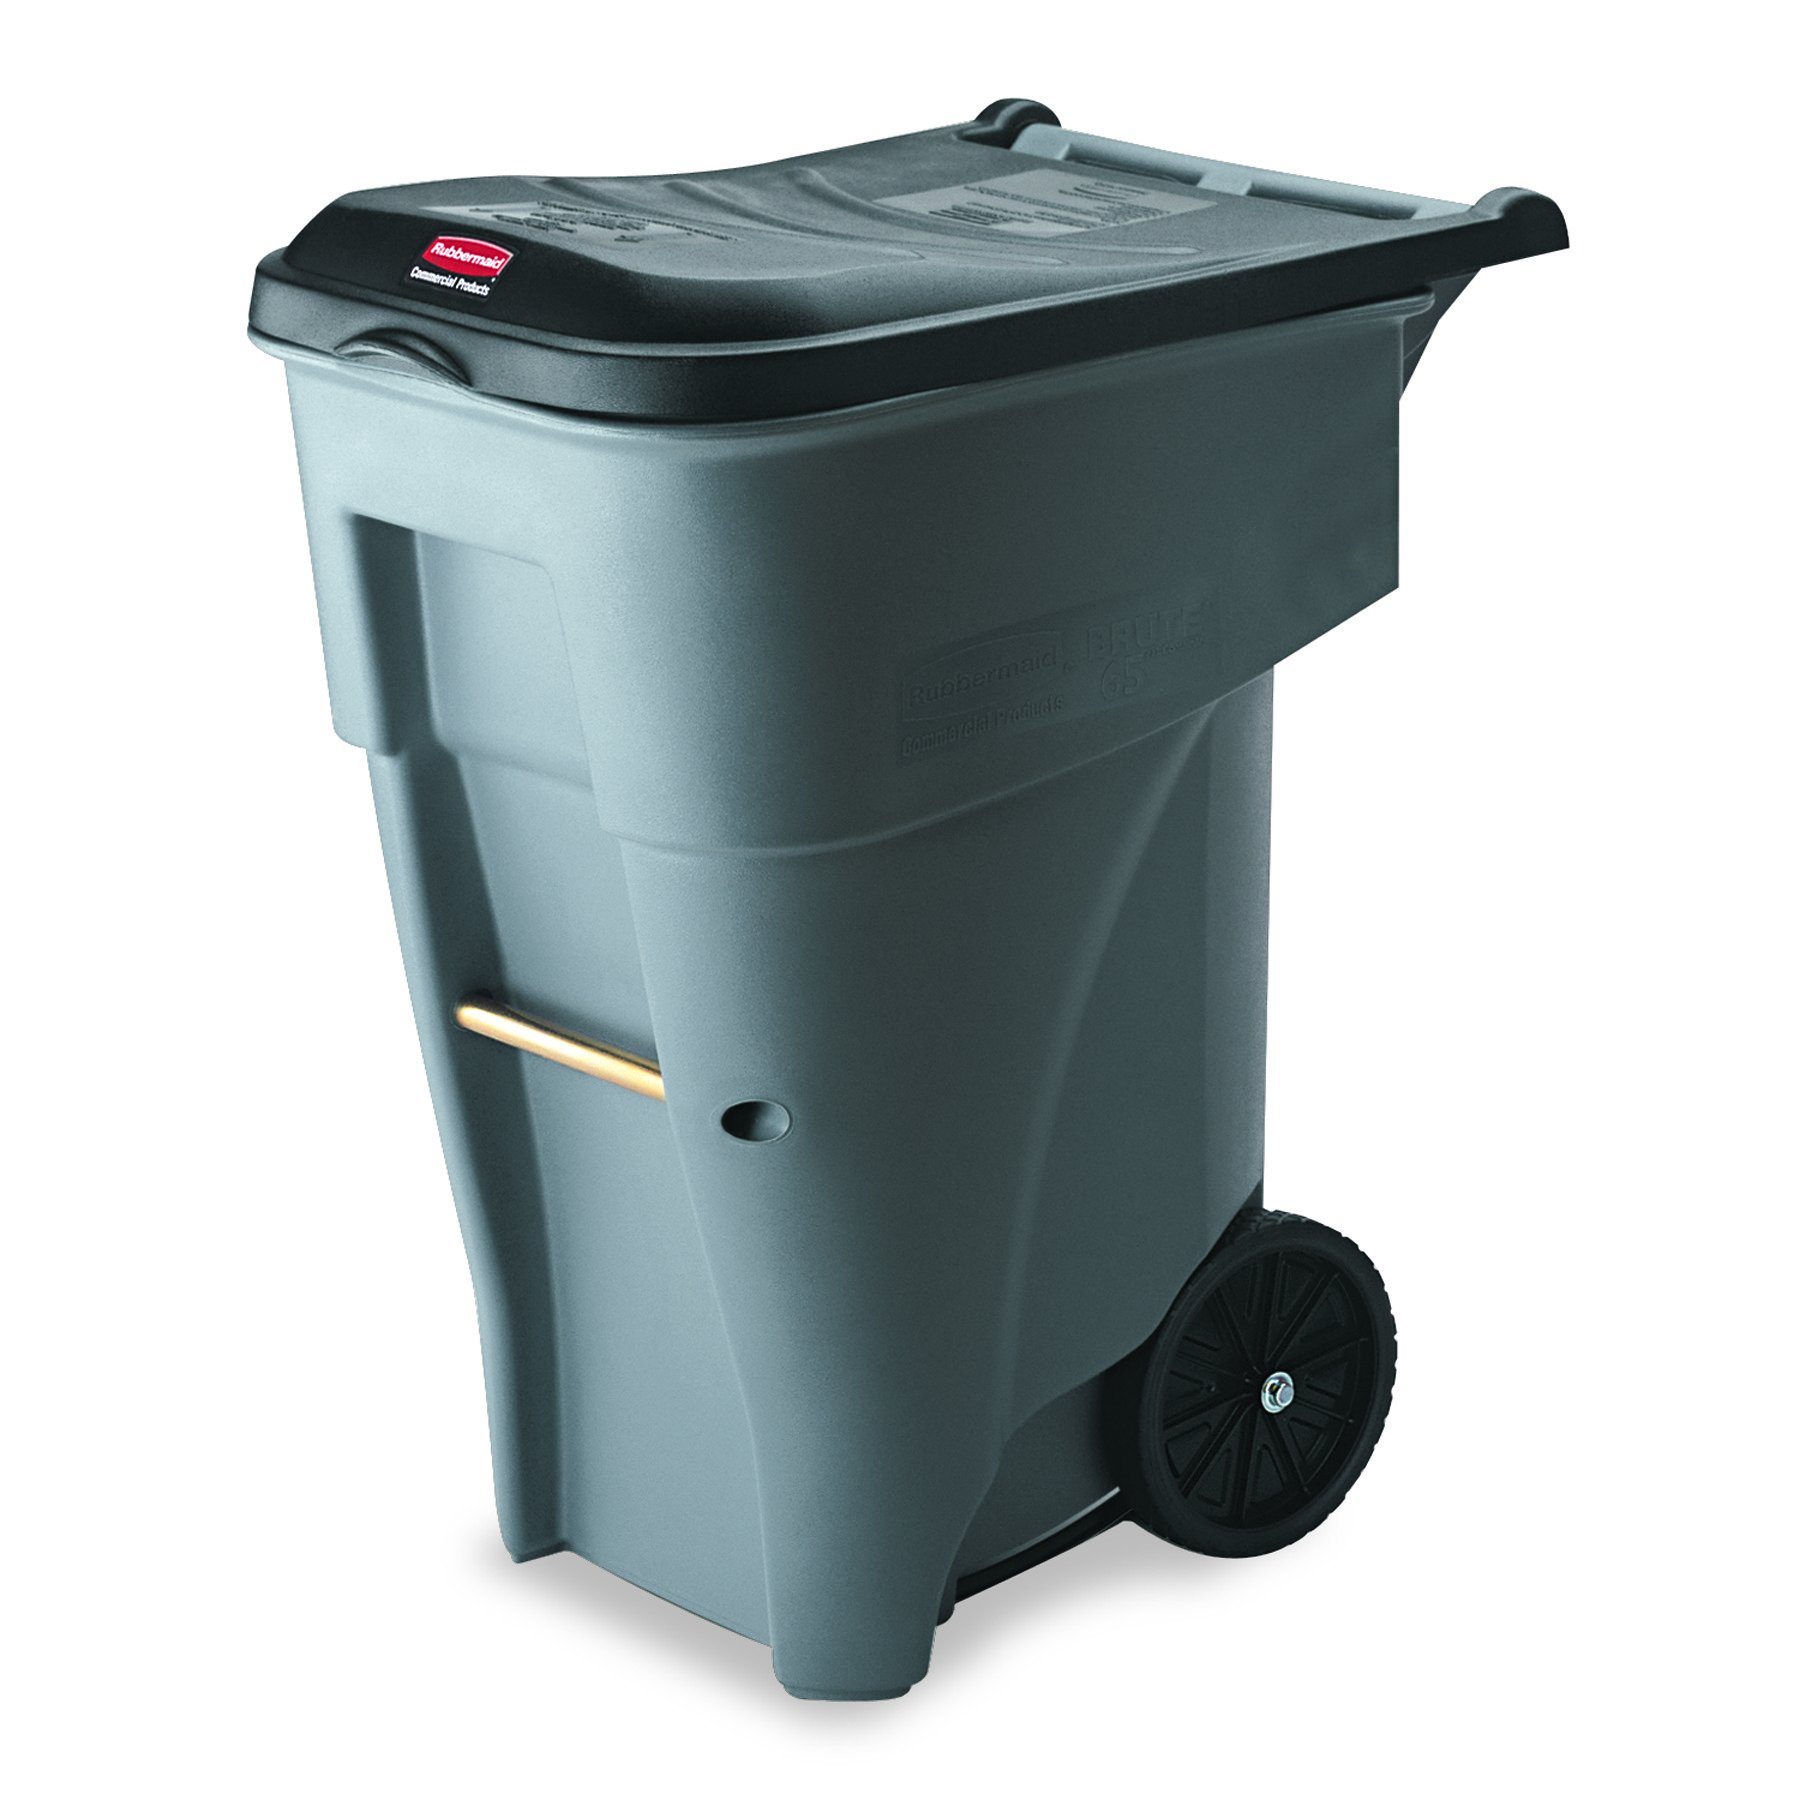 Rubbermaid Commercial BRUTE Rollout Heavy-Duty Waste Container, Square, Polyethylene, 65gal, Gray, (FG9W2100GRAY)